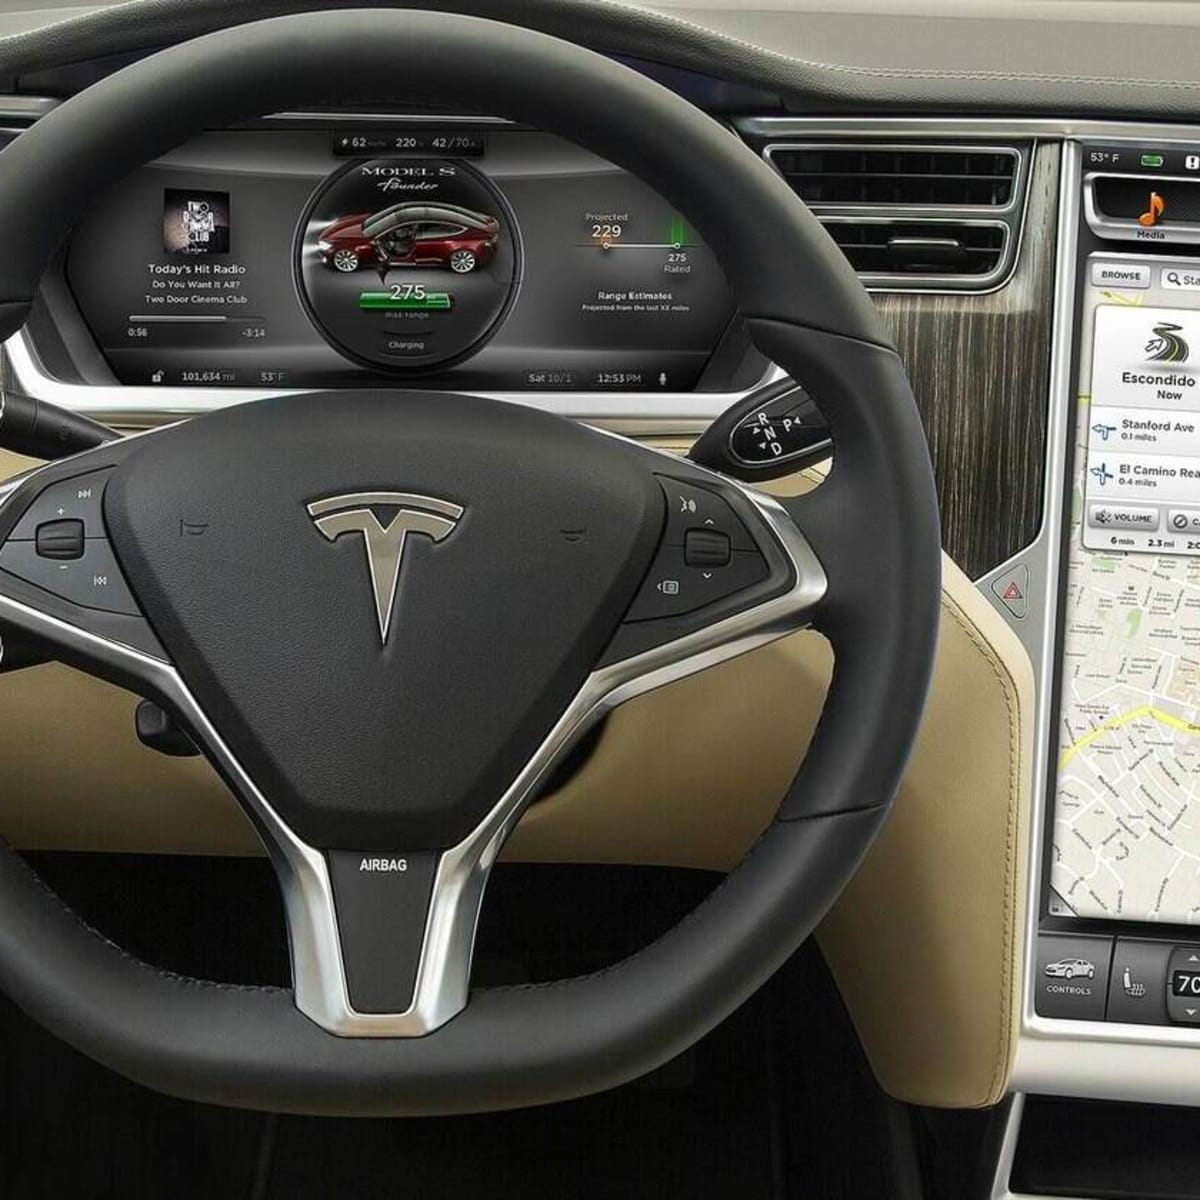 Tesla Model S : Software v6 0 update brings location-based